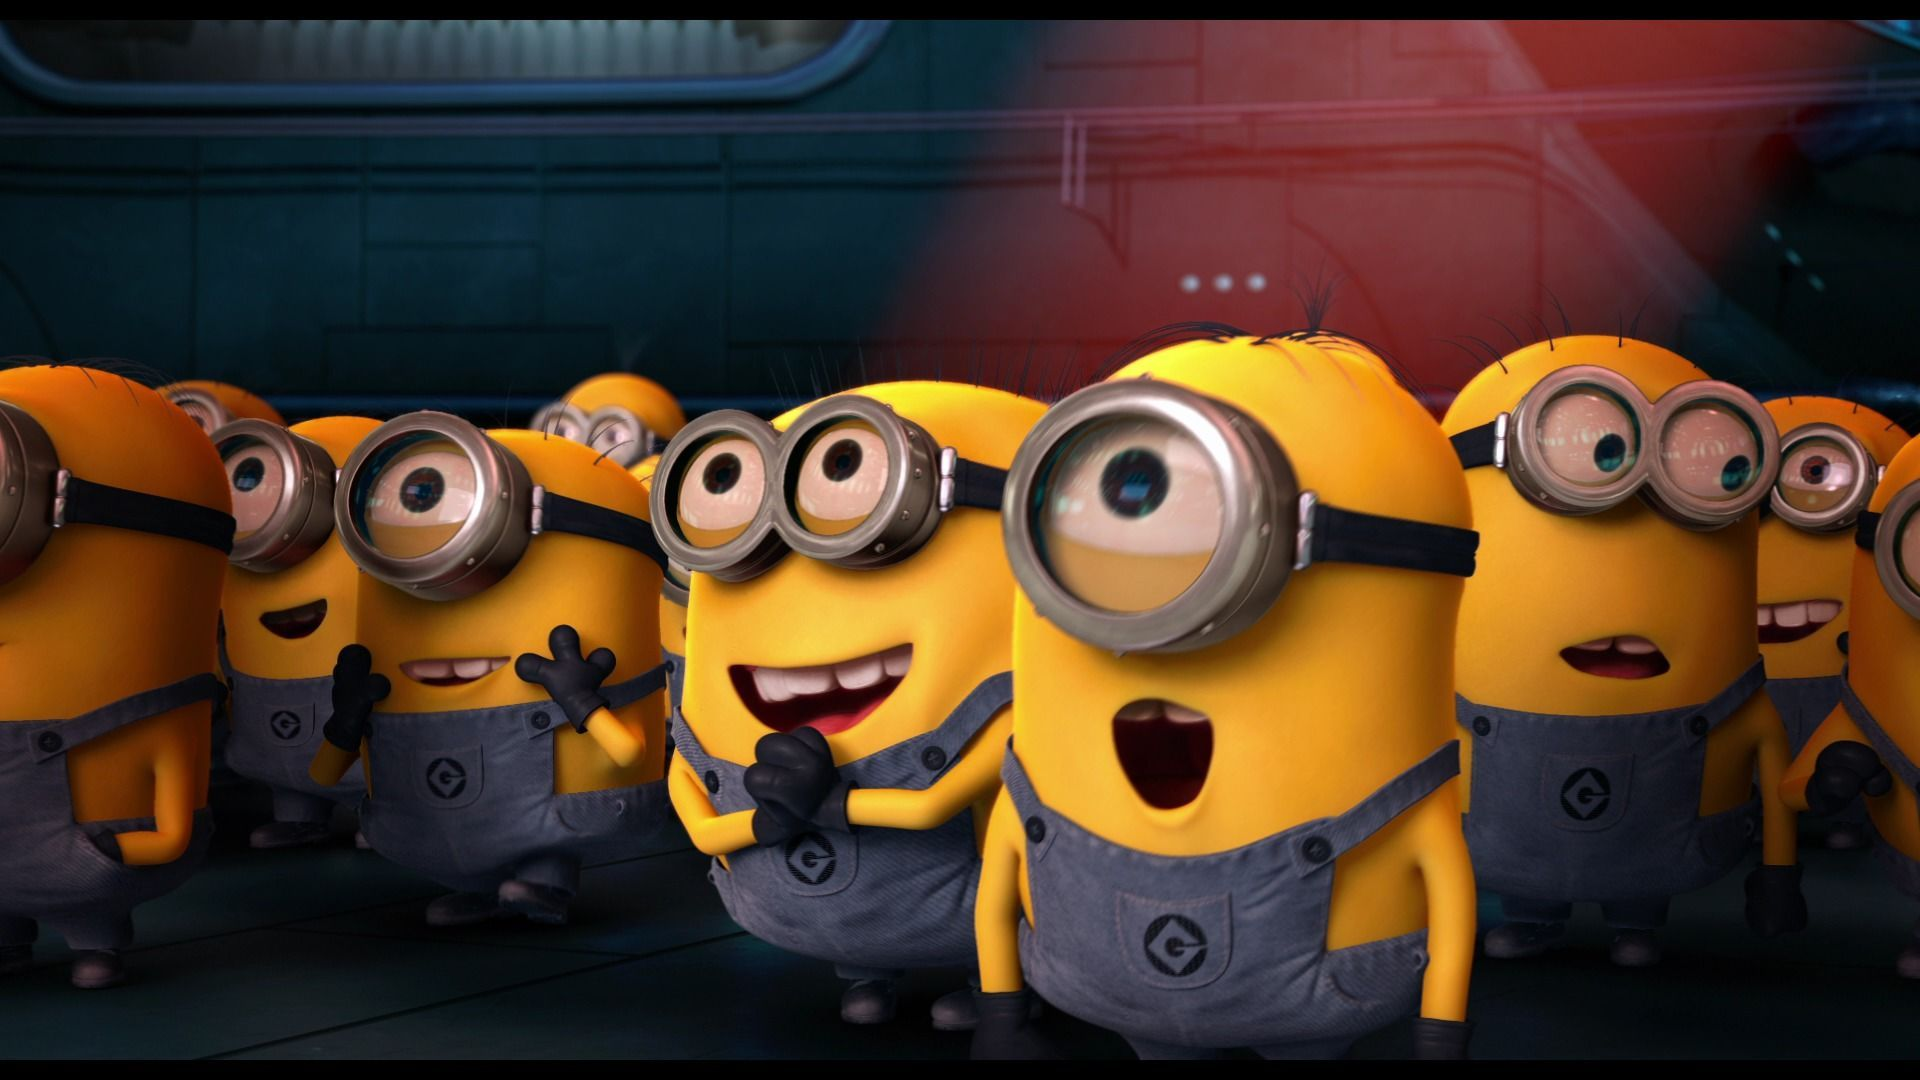 Minions wallpapers pictures images - Despicable minions wallpaper ...